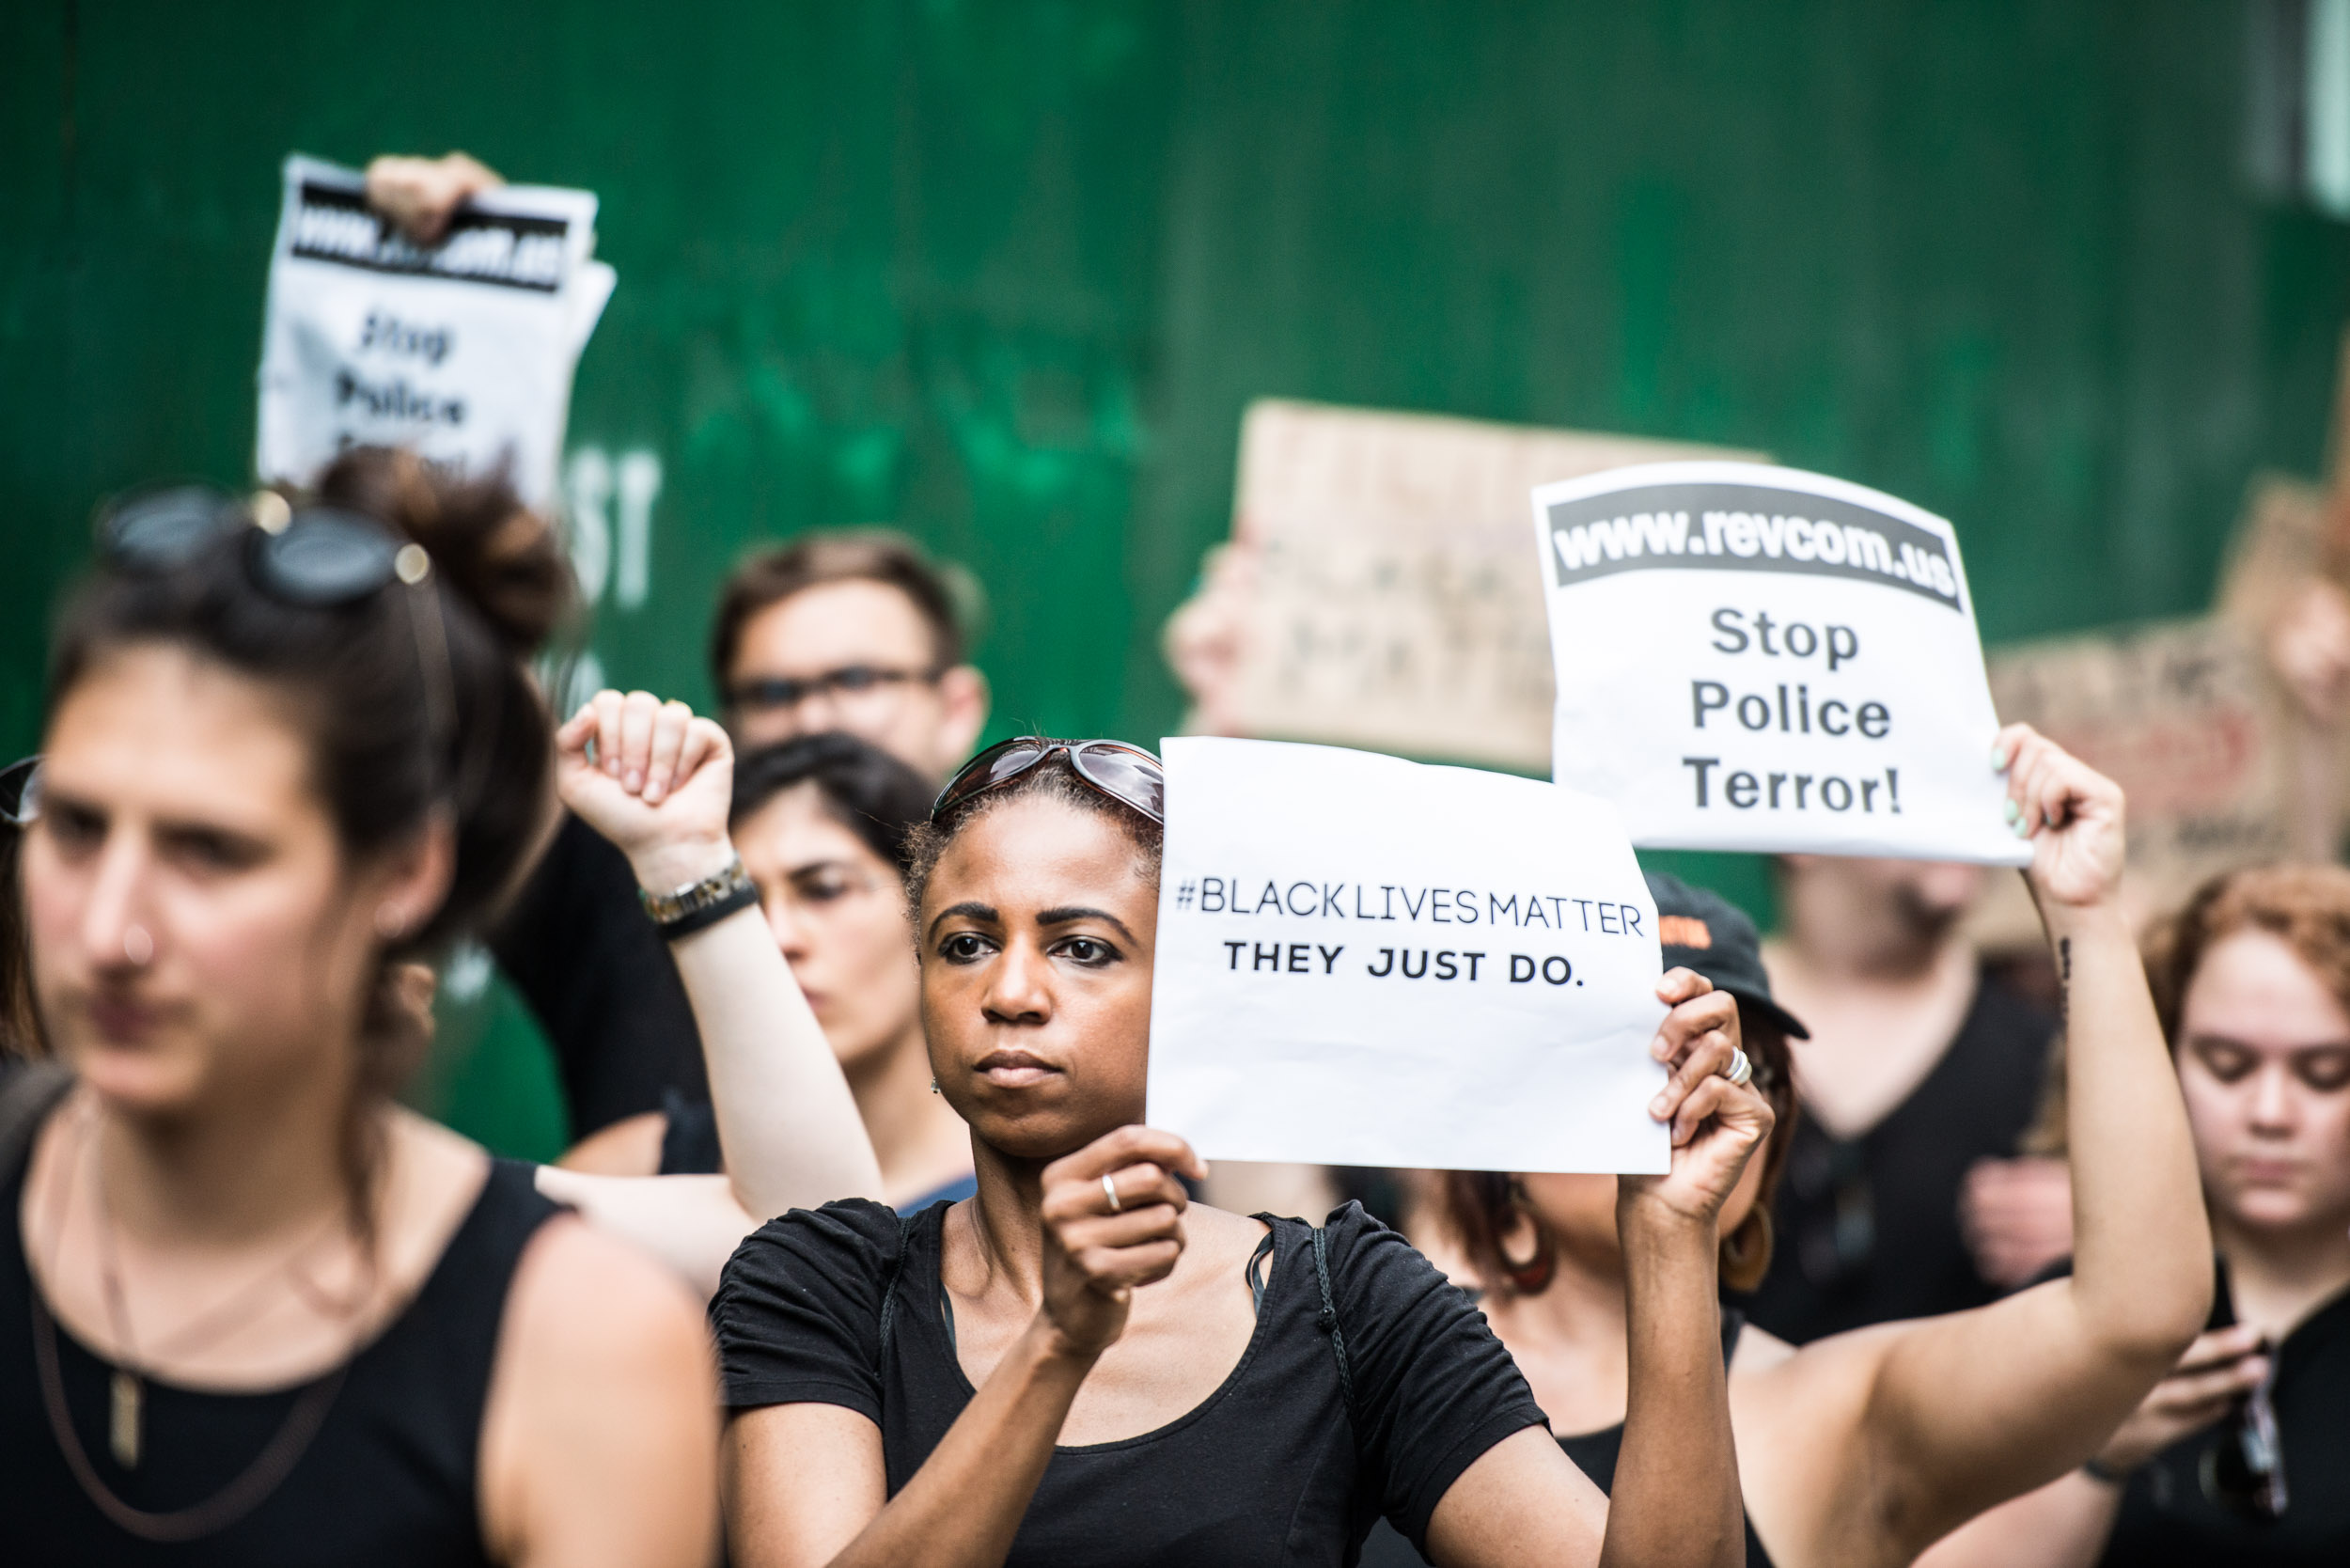 Peaceful protest - current events - Photo credit Nicola Bailey.jpg